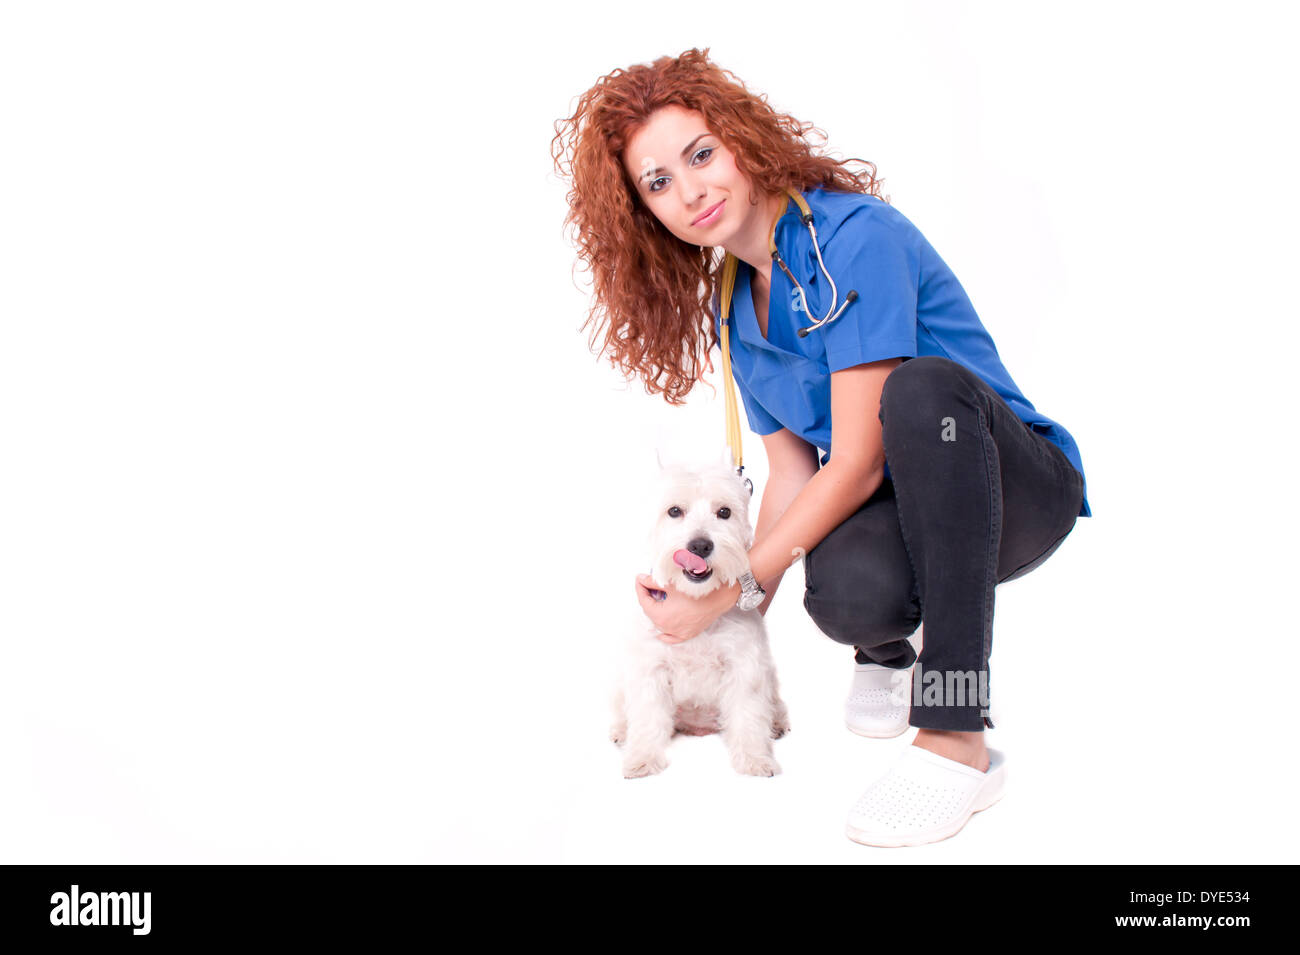 Veterinarian woman with dog - Stock Image